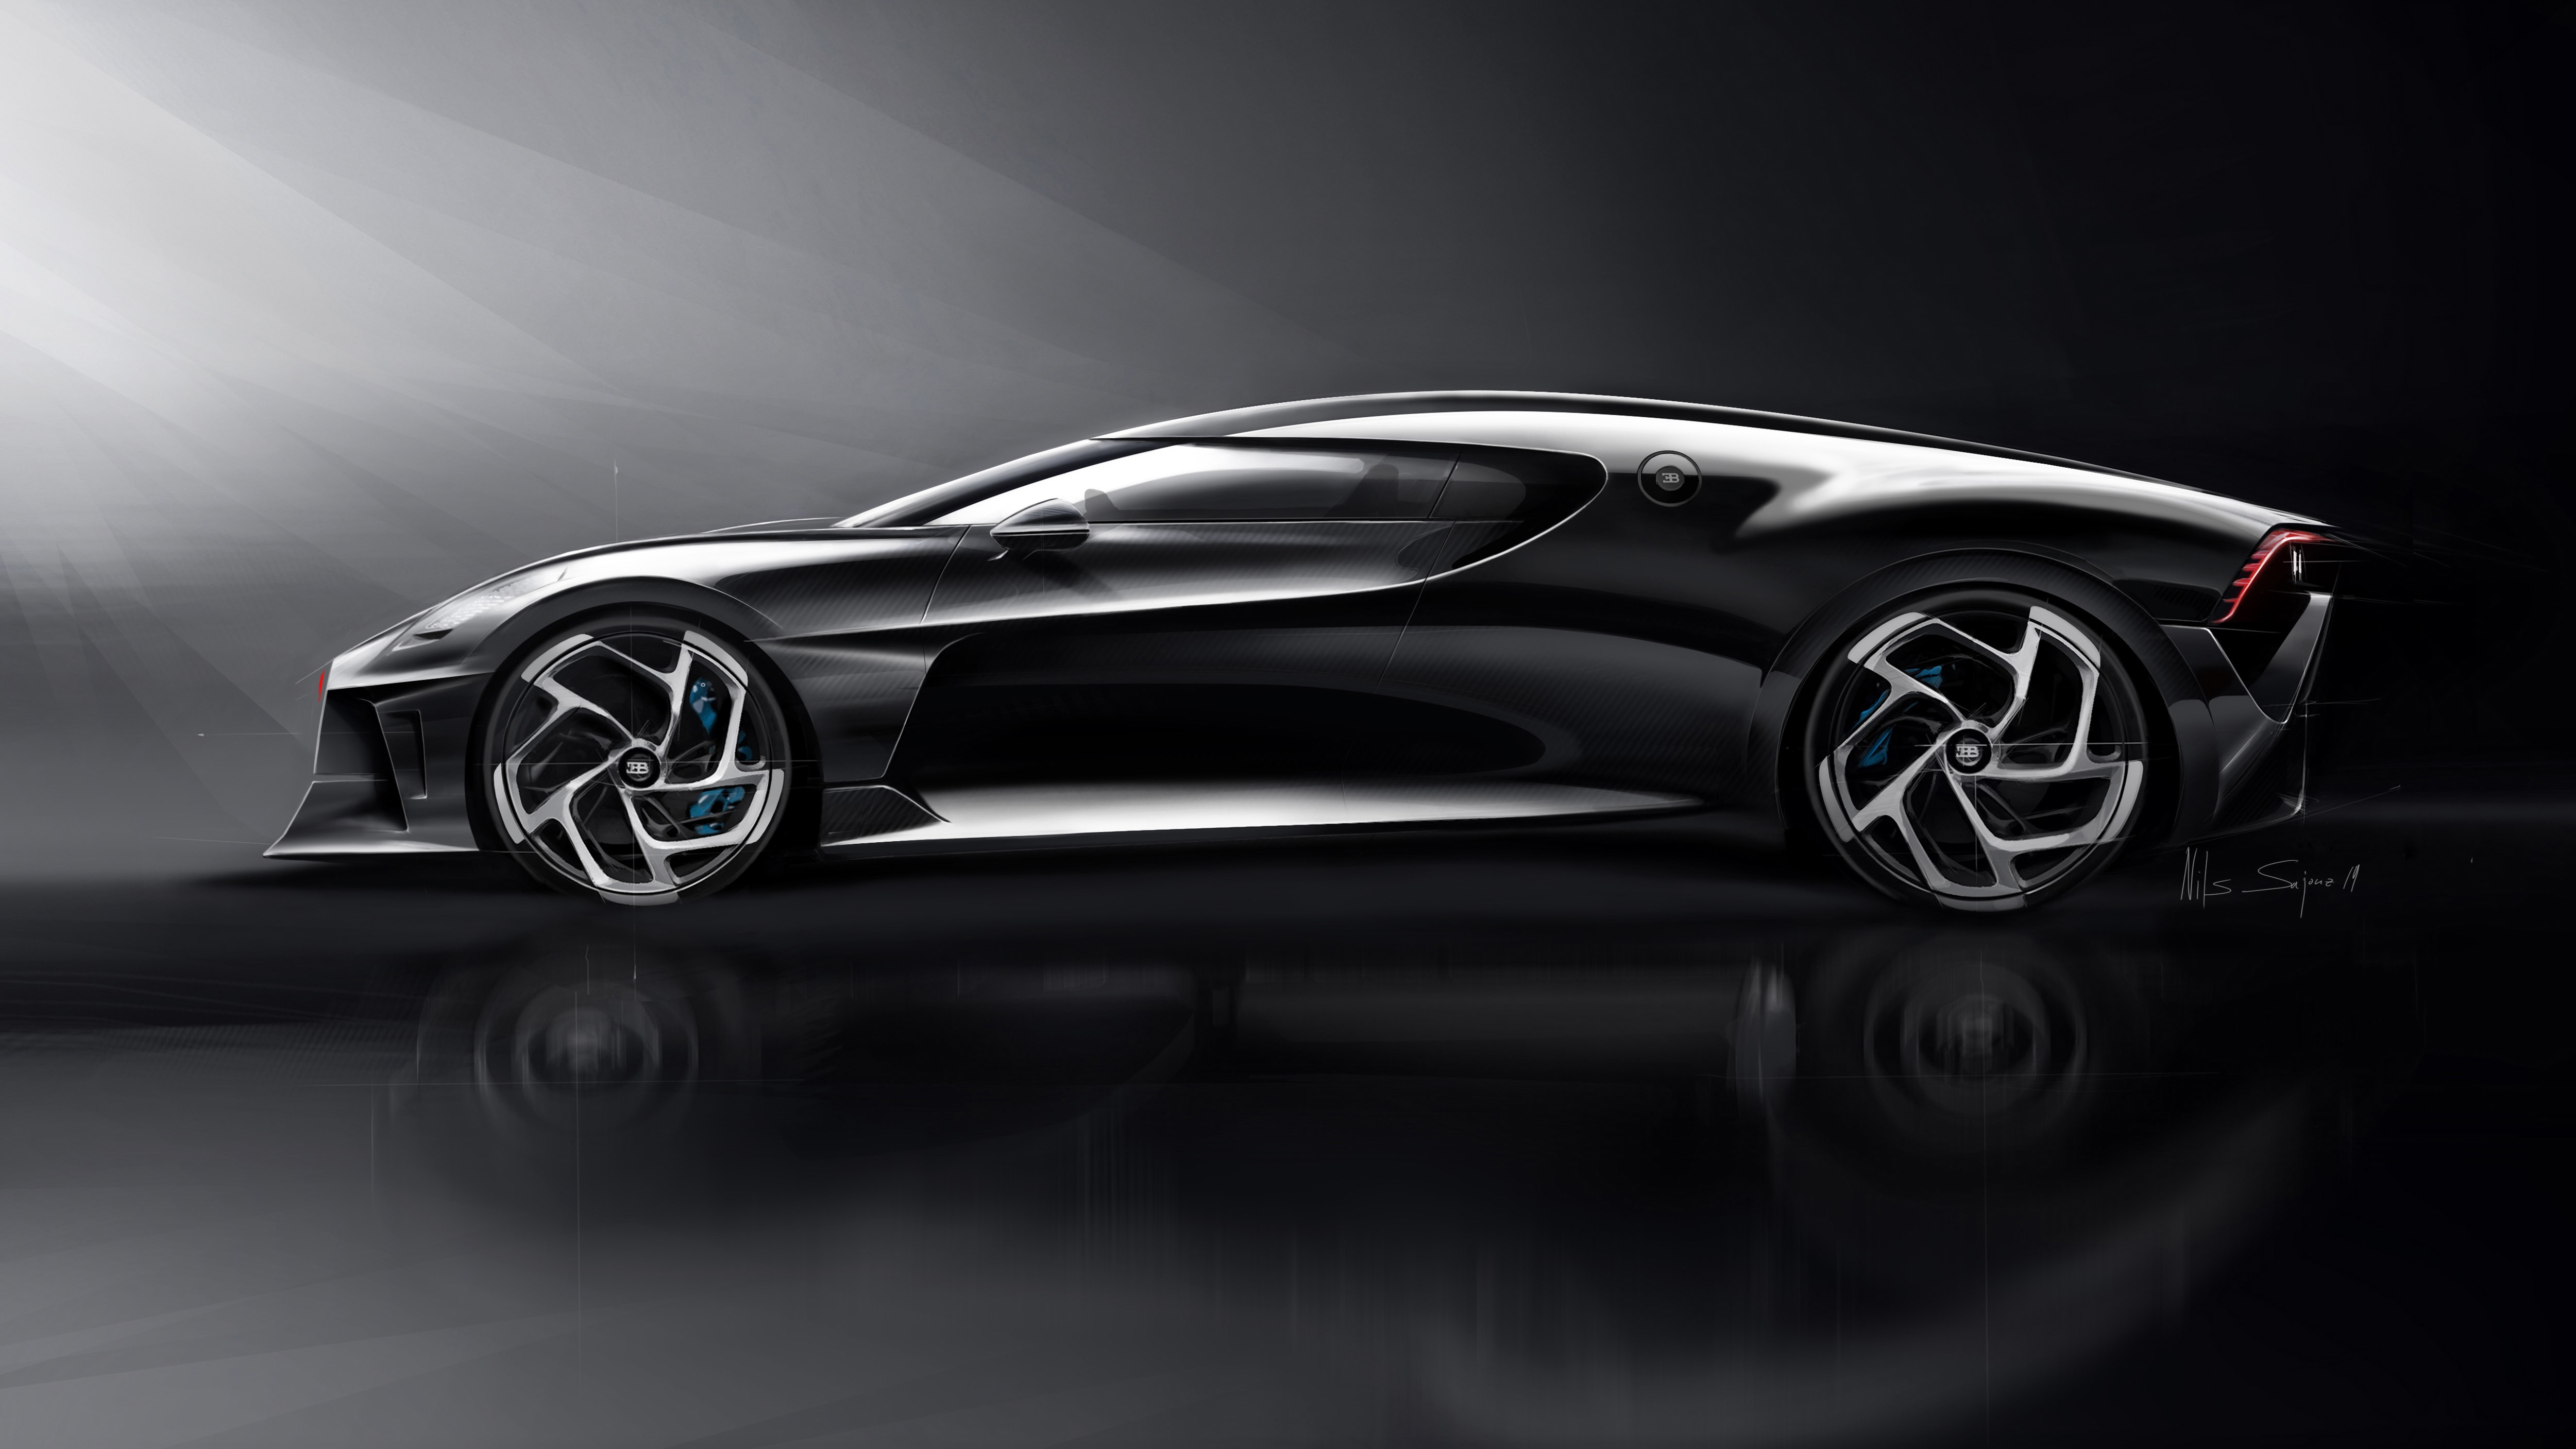 2019 Bugatti La Voiture Noire Sketches By Etienne Gallery: THE WORLD'S MOST EXCLUSIVE BUGATTI